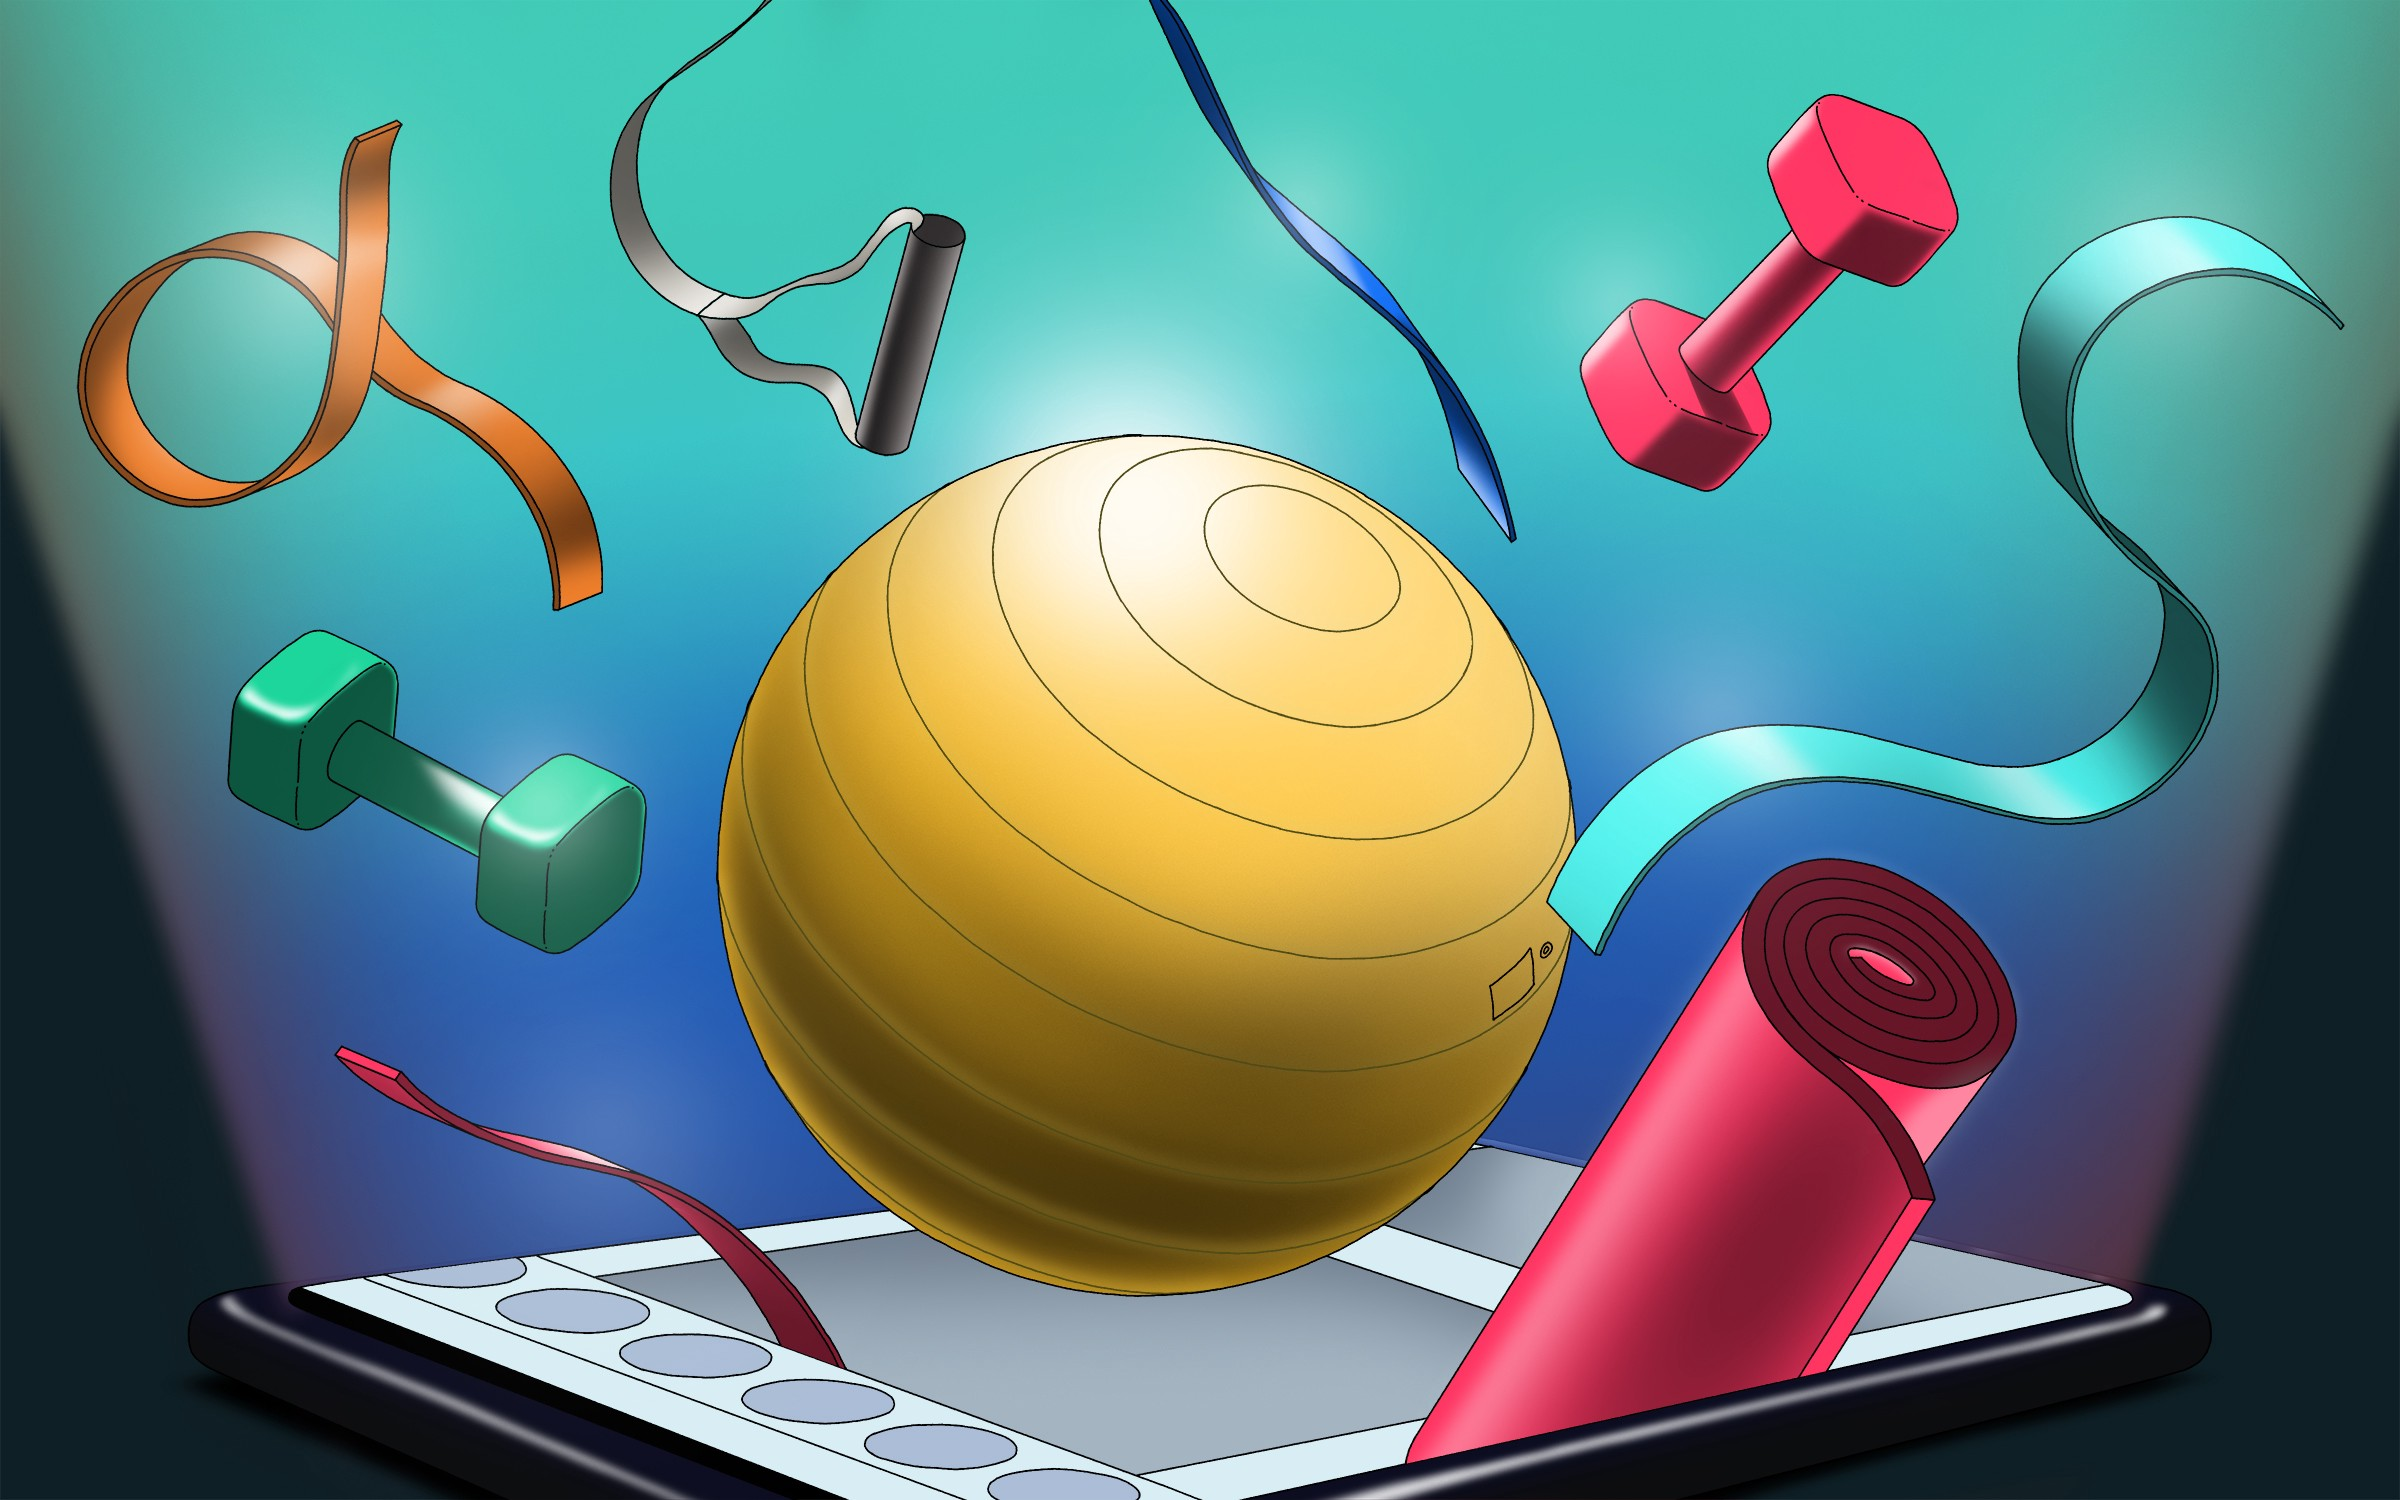 Various fitness equipment such as yoga mats, exercise balls, free weights, and rubber bands projecting out of a phone screen.